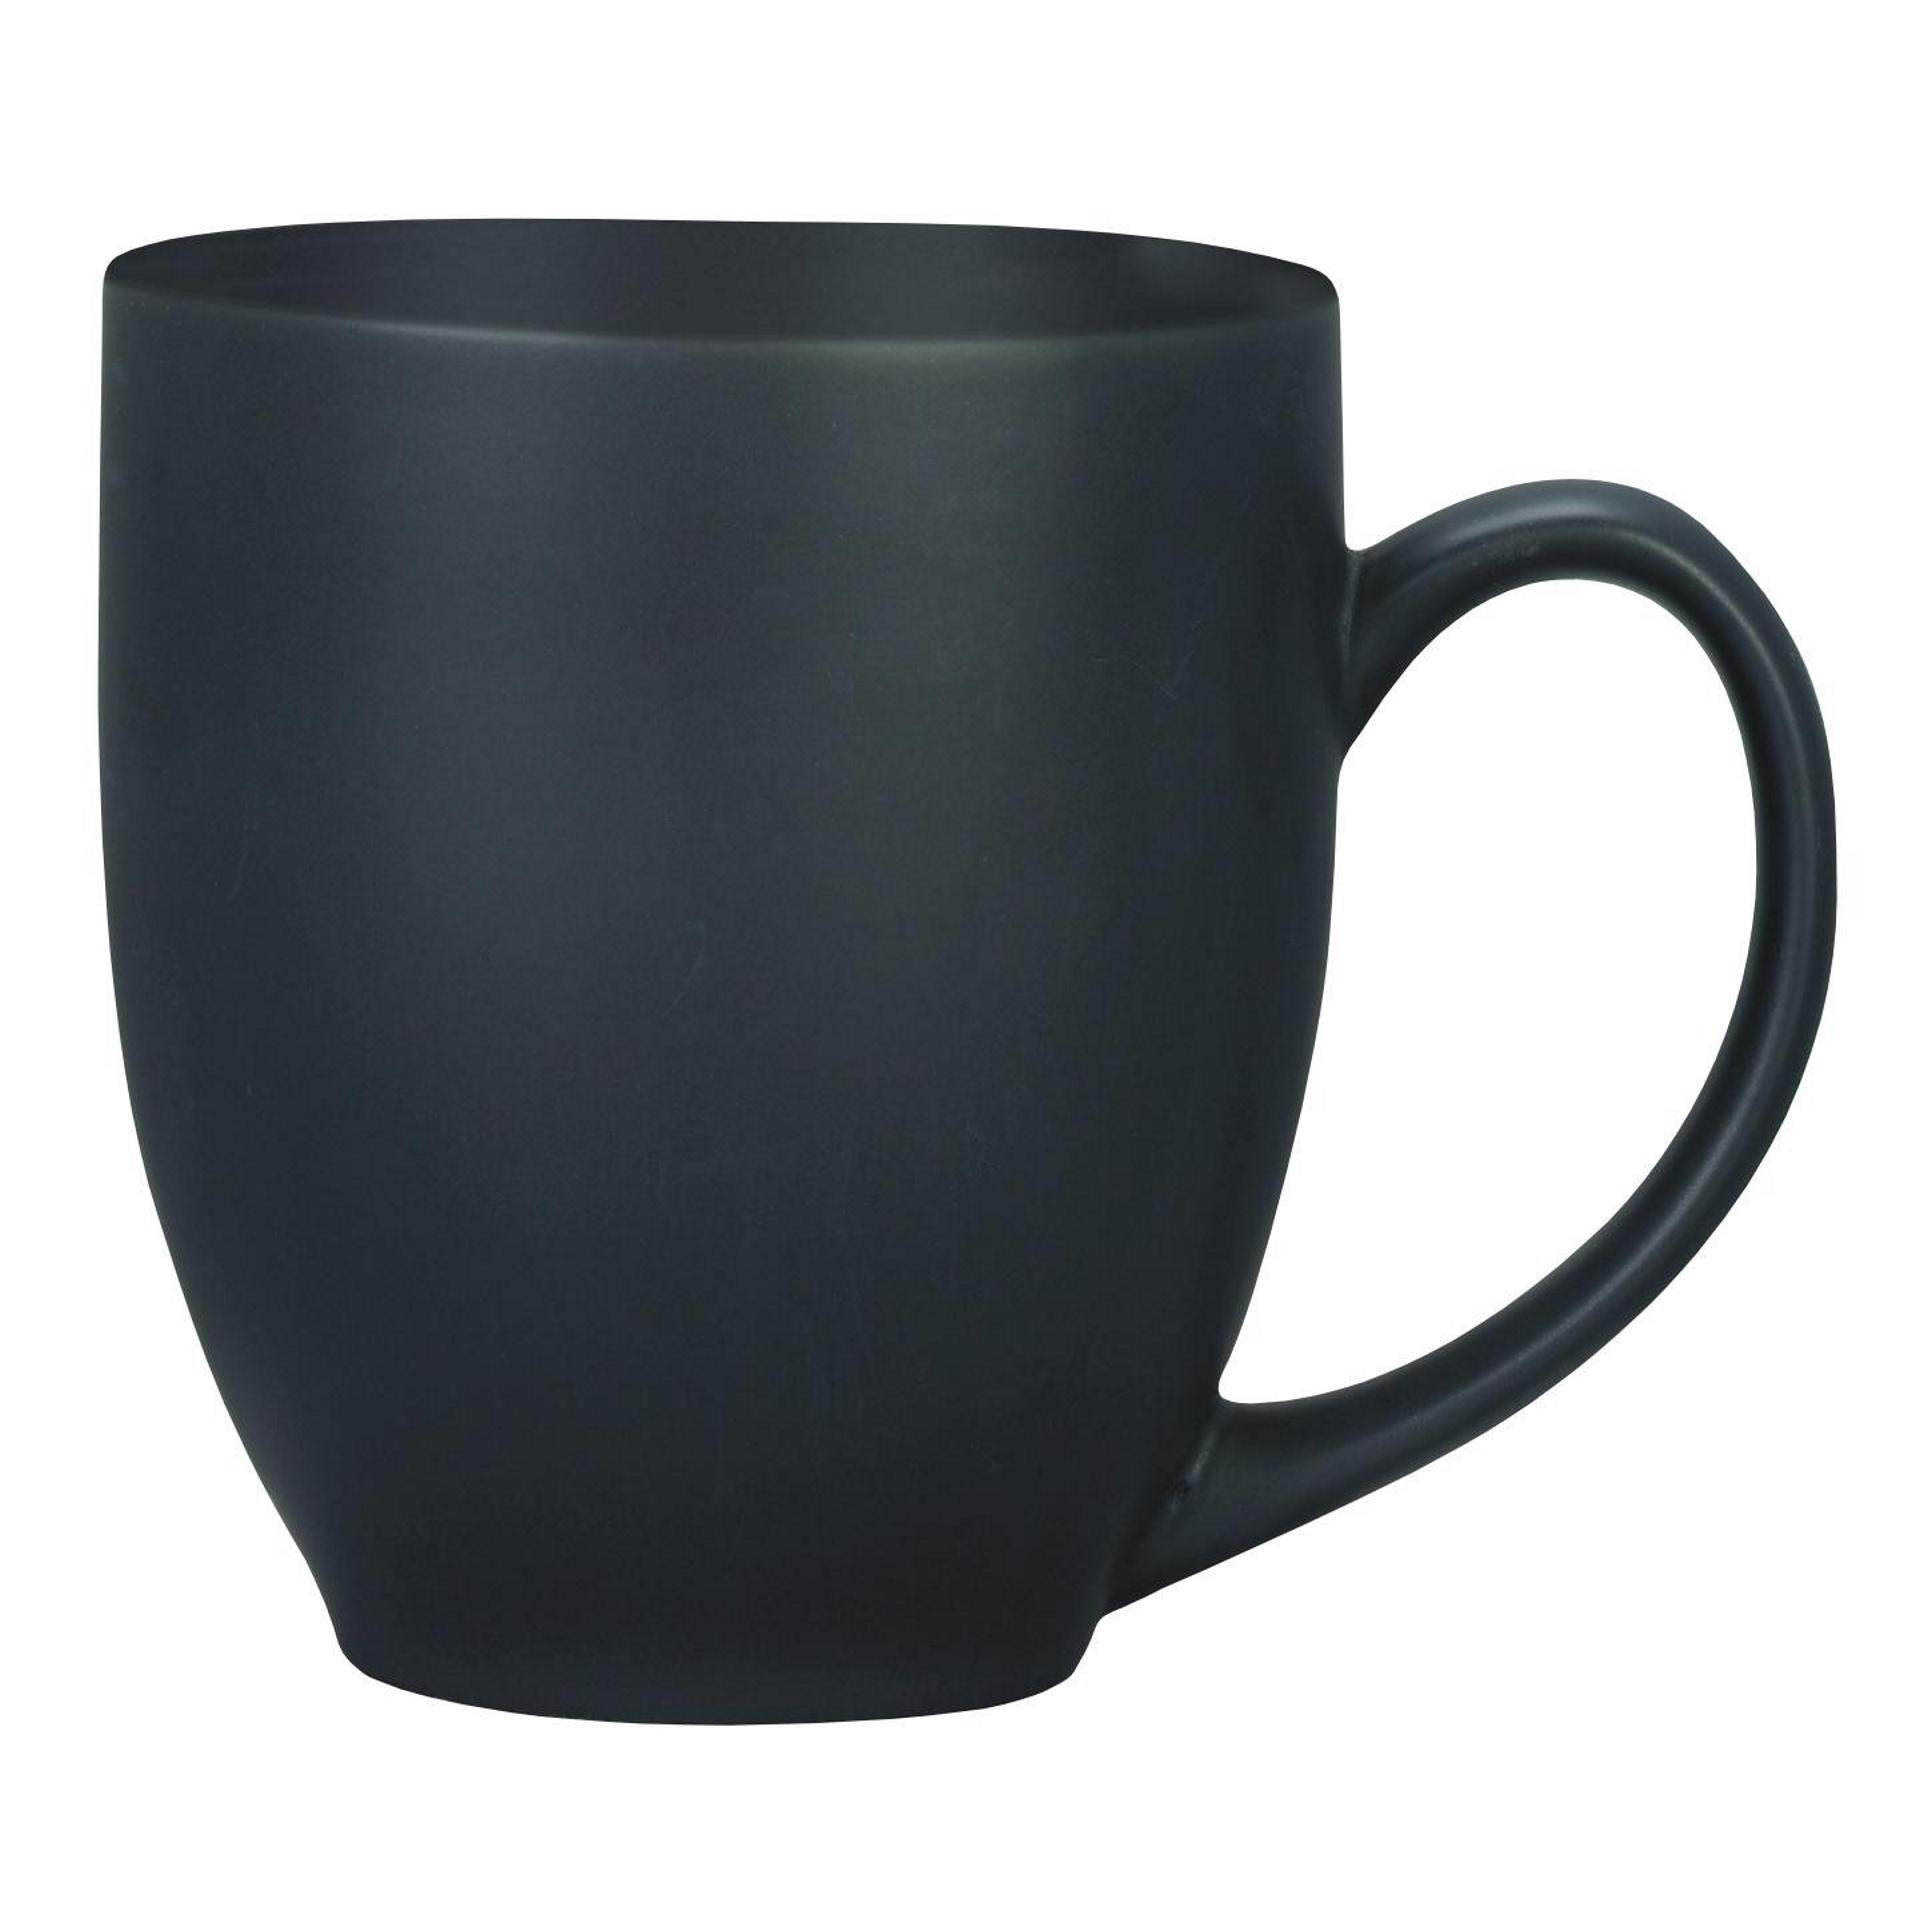 Mug That Says Coffee Manhattan Coffee Mug Matte Black Curve Shaped Mug Solid